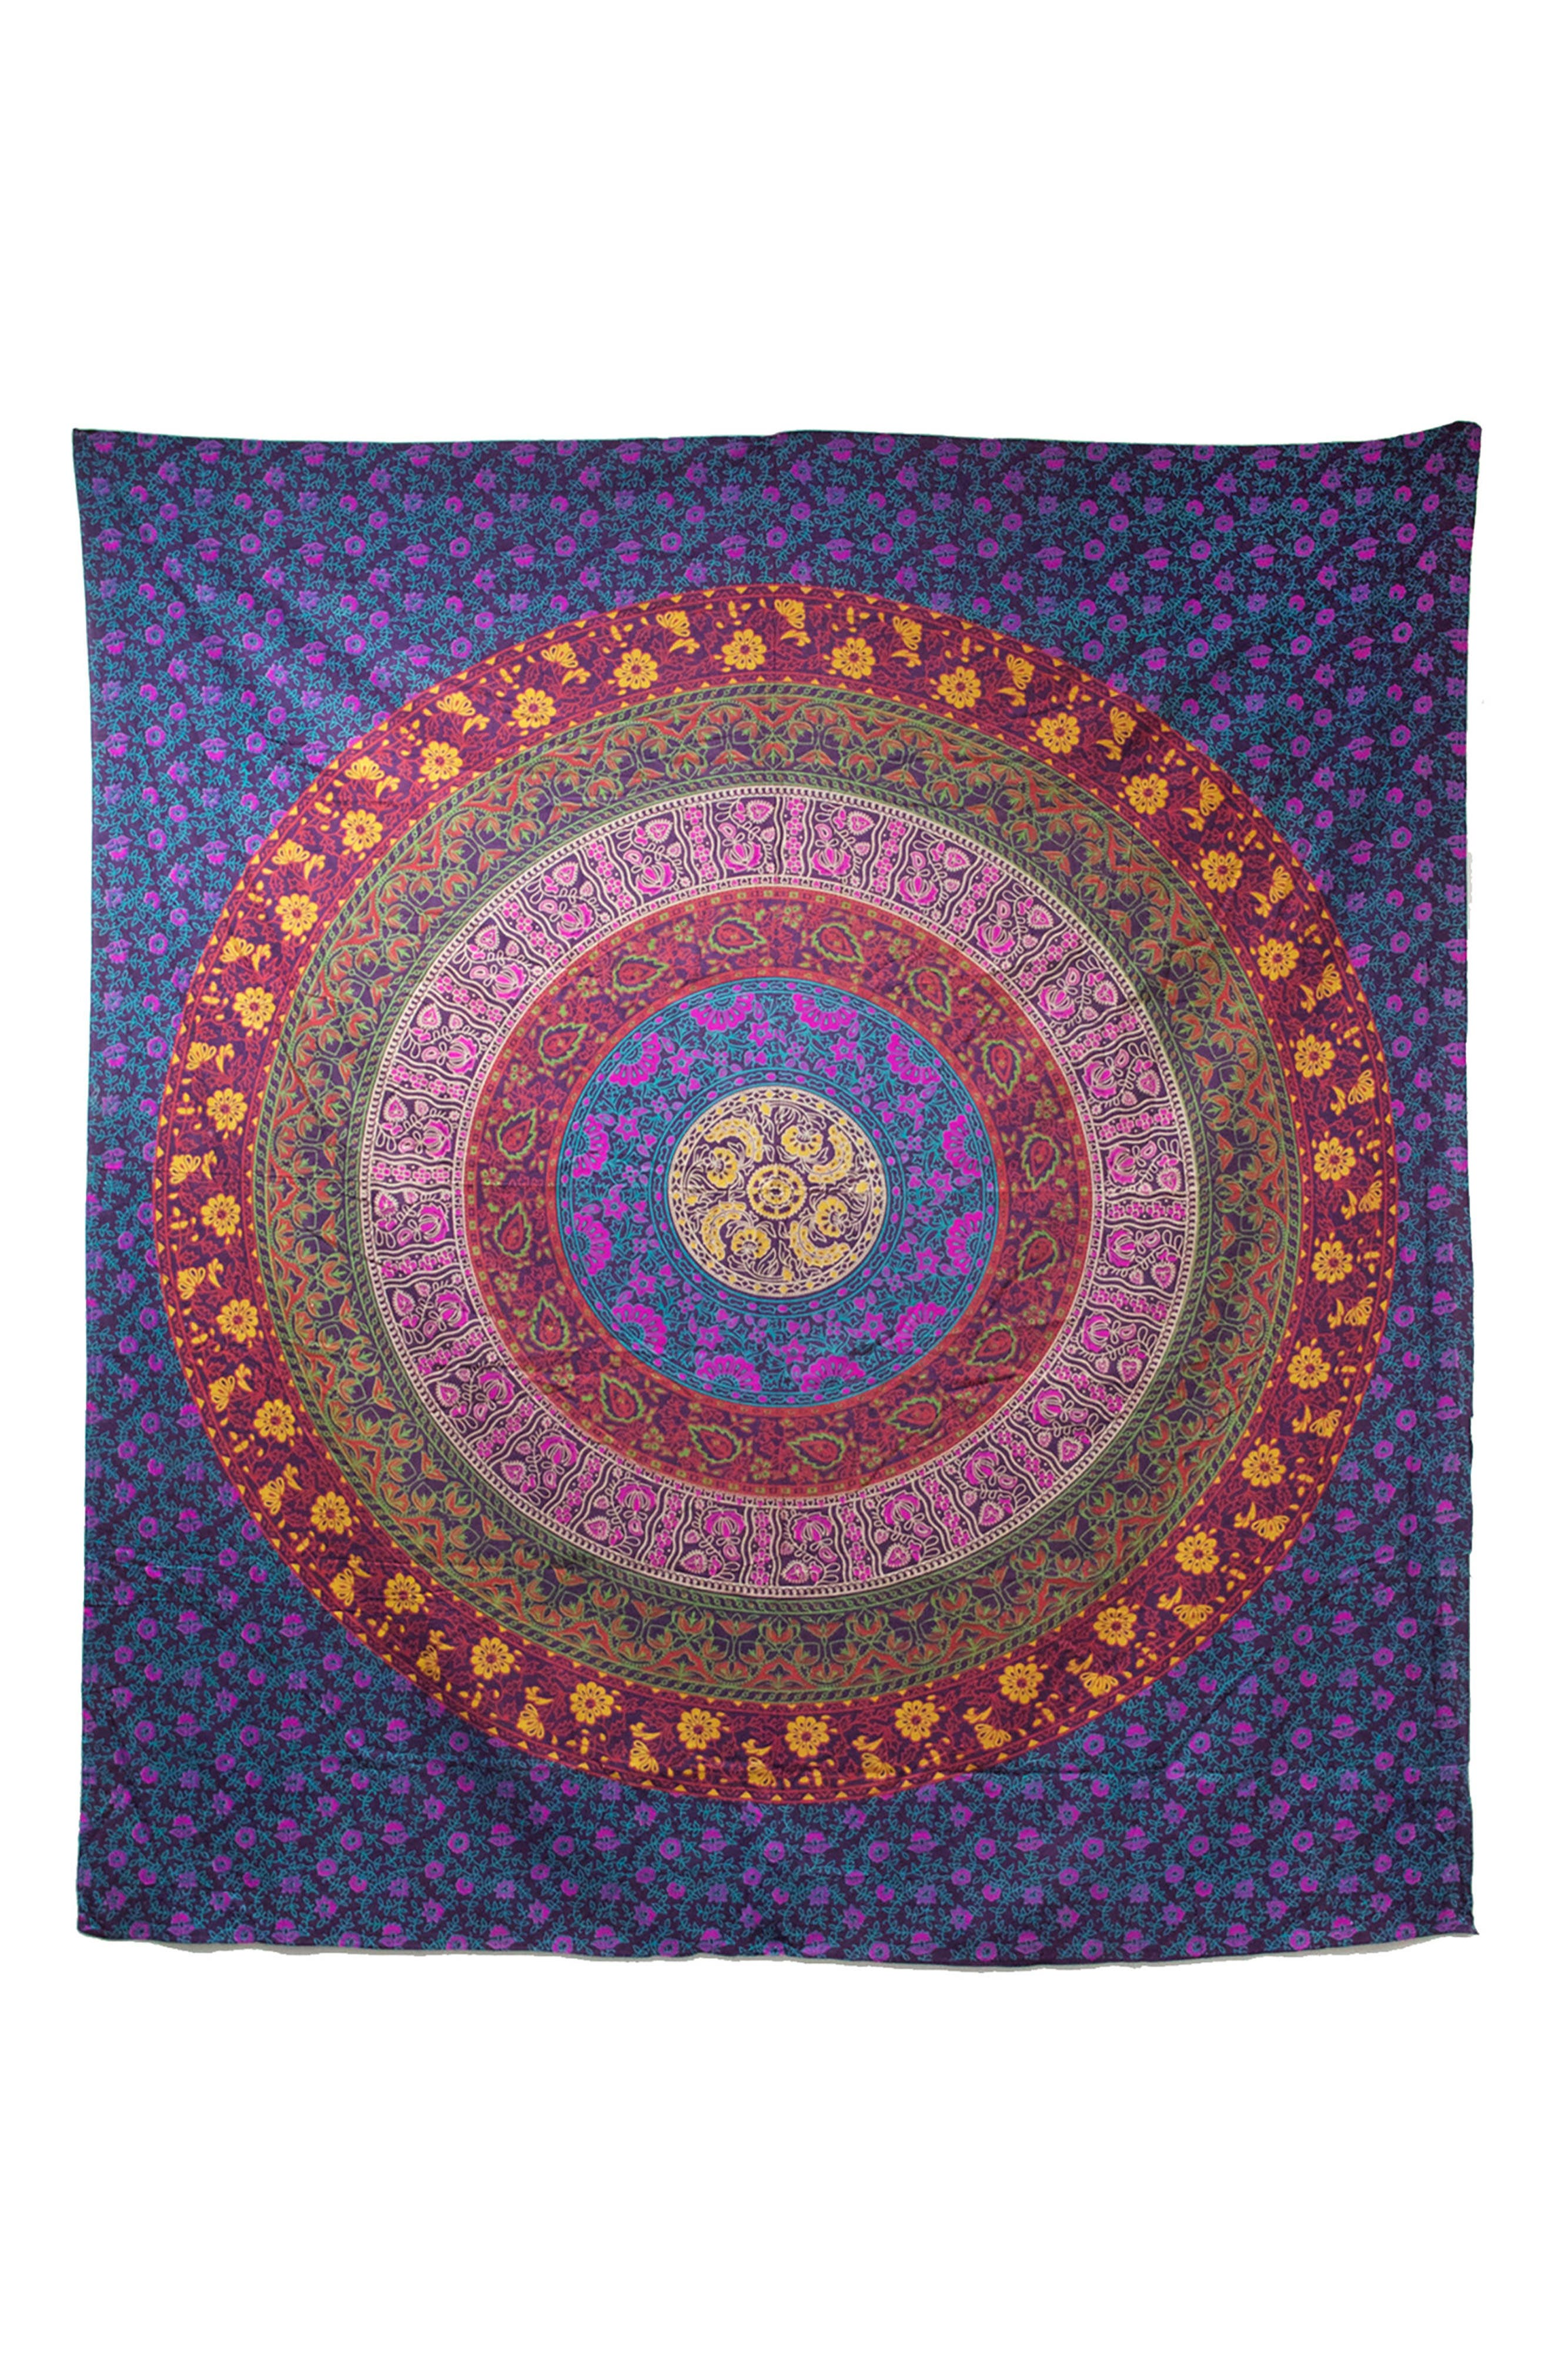 Alternate Image 1 Selected - Wallpops Meher Wall Tapestry